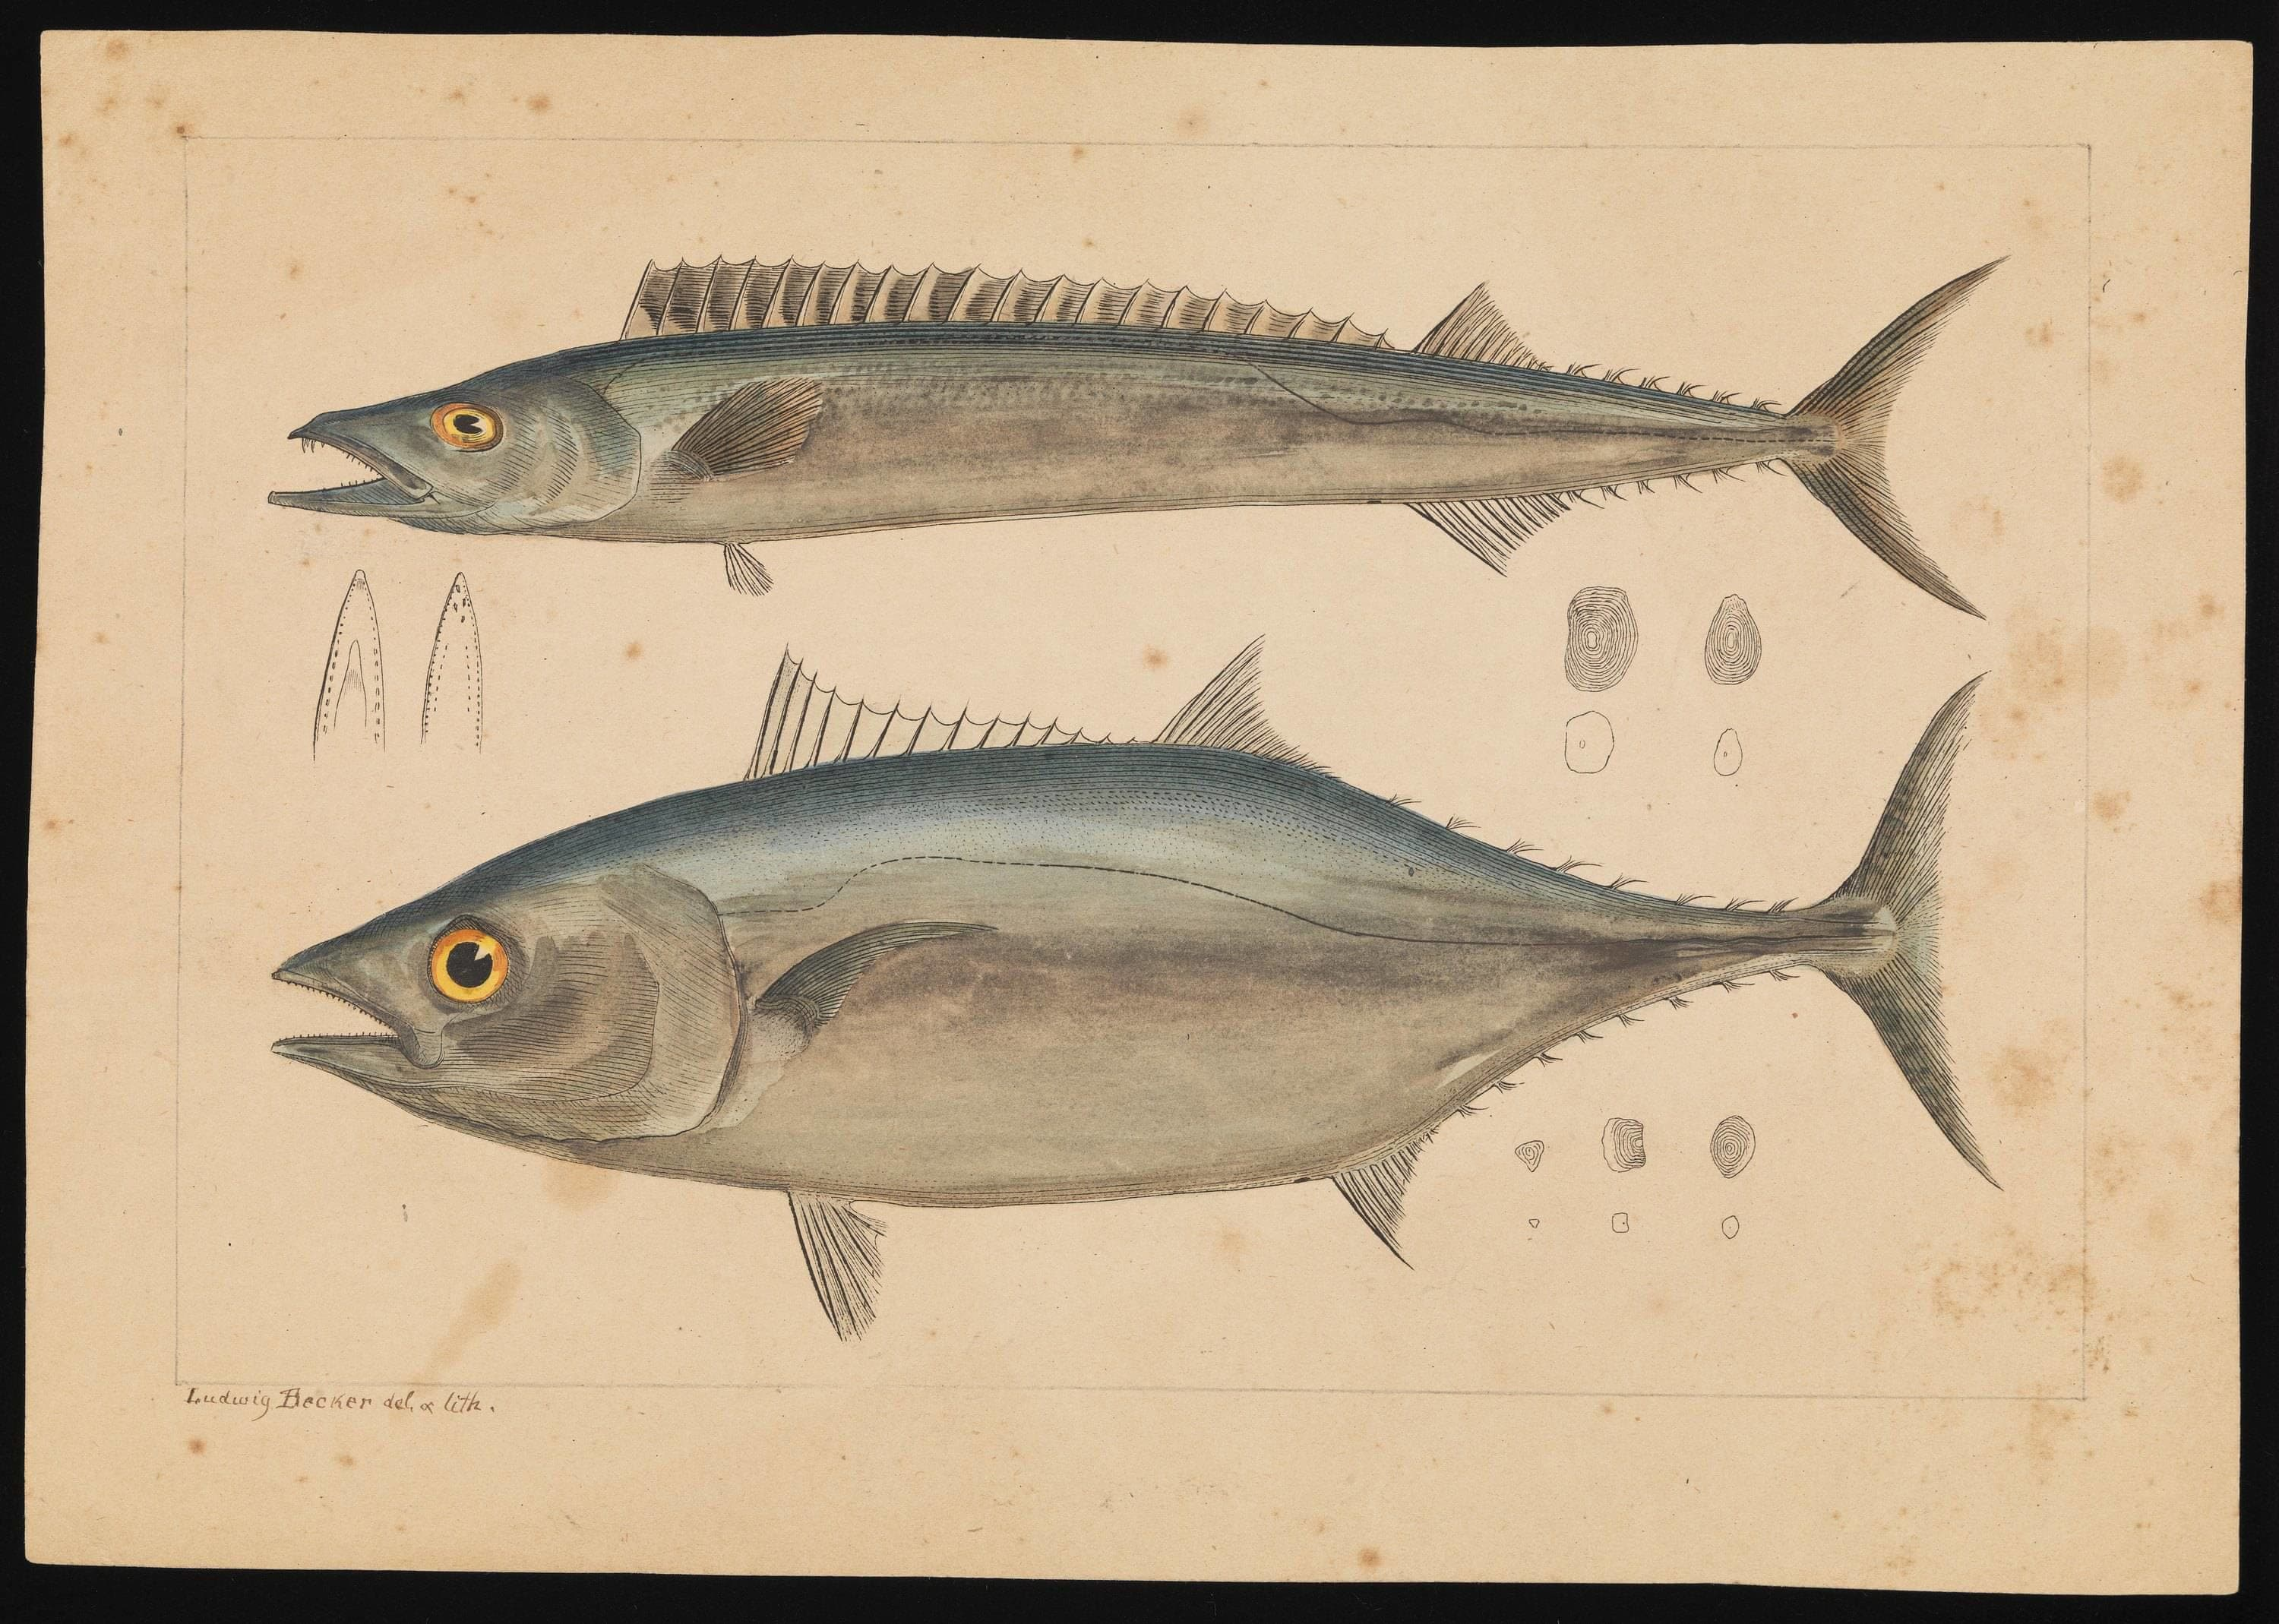 Scientific watercolour painting of two tuna fish.